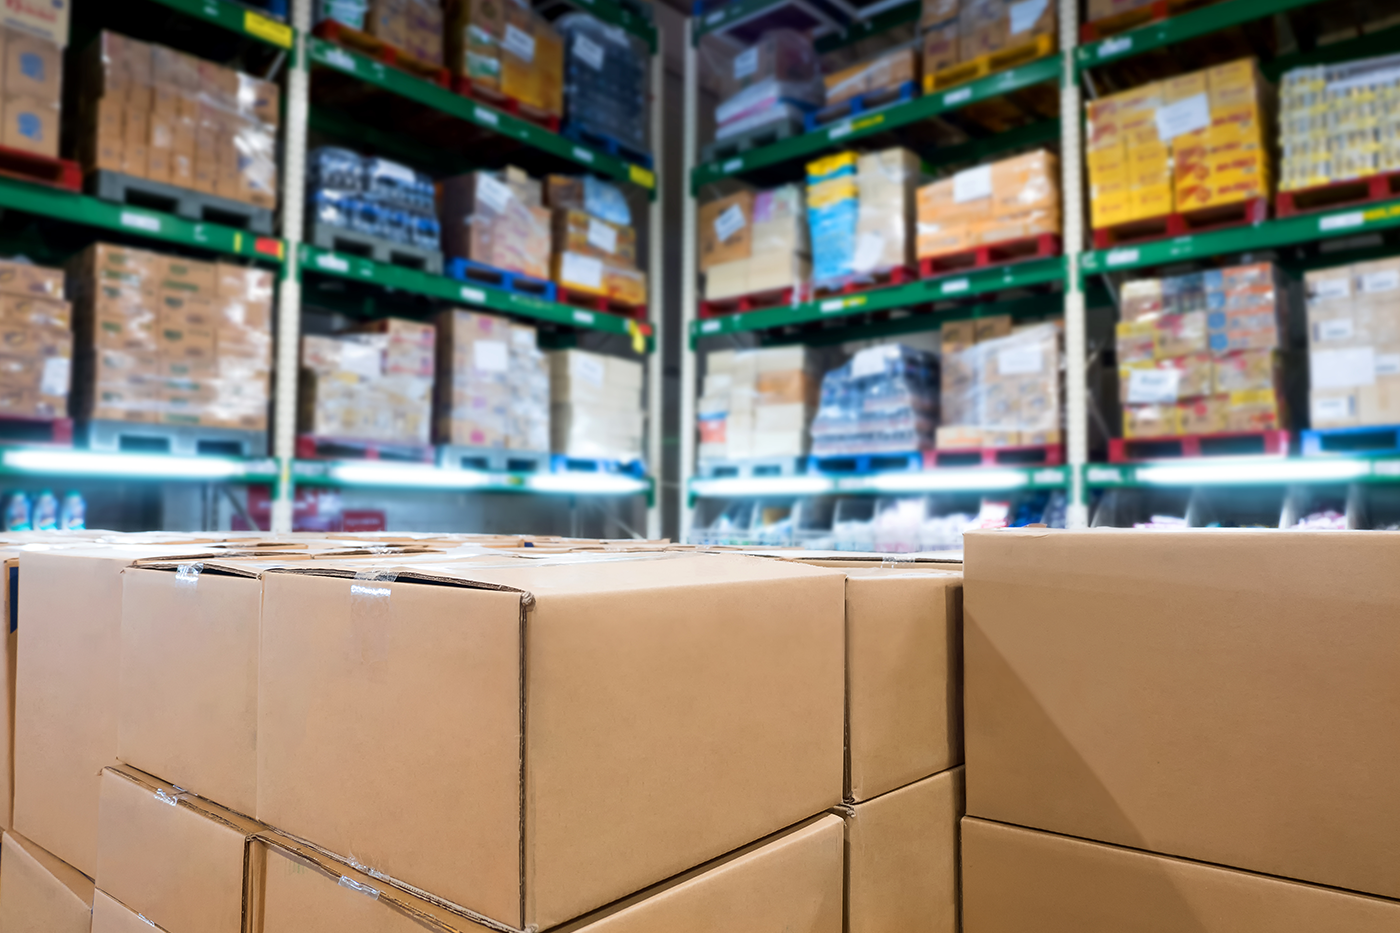 Train on These 4 Grocery Retail Inventory Management Best Practices & Save A Ton of Money